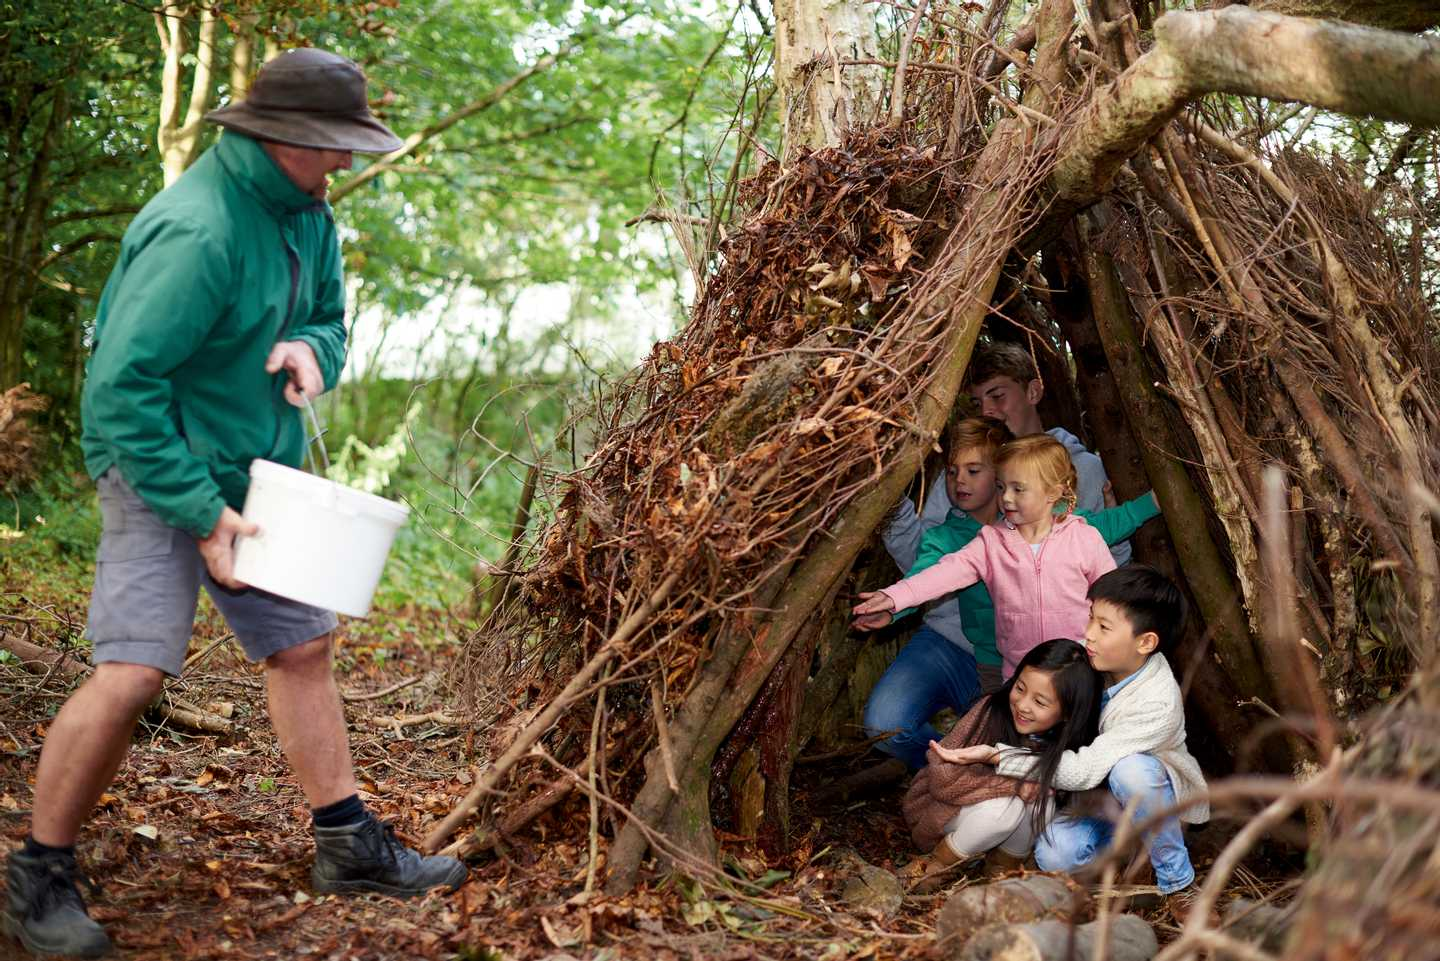 Kids in a survival shelter